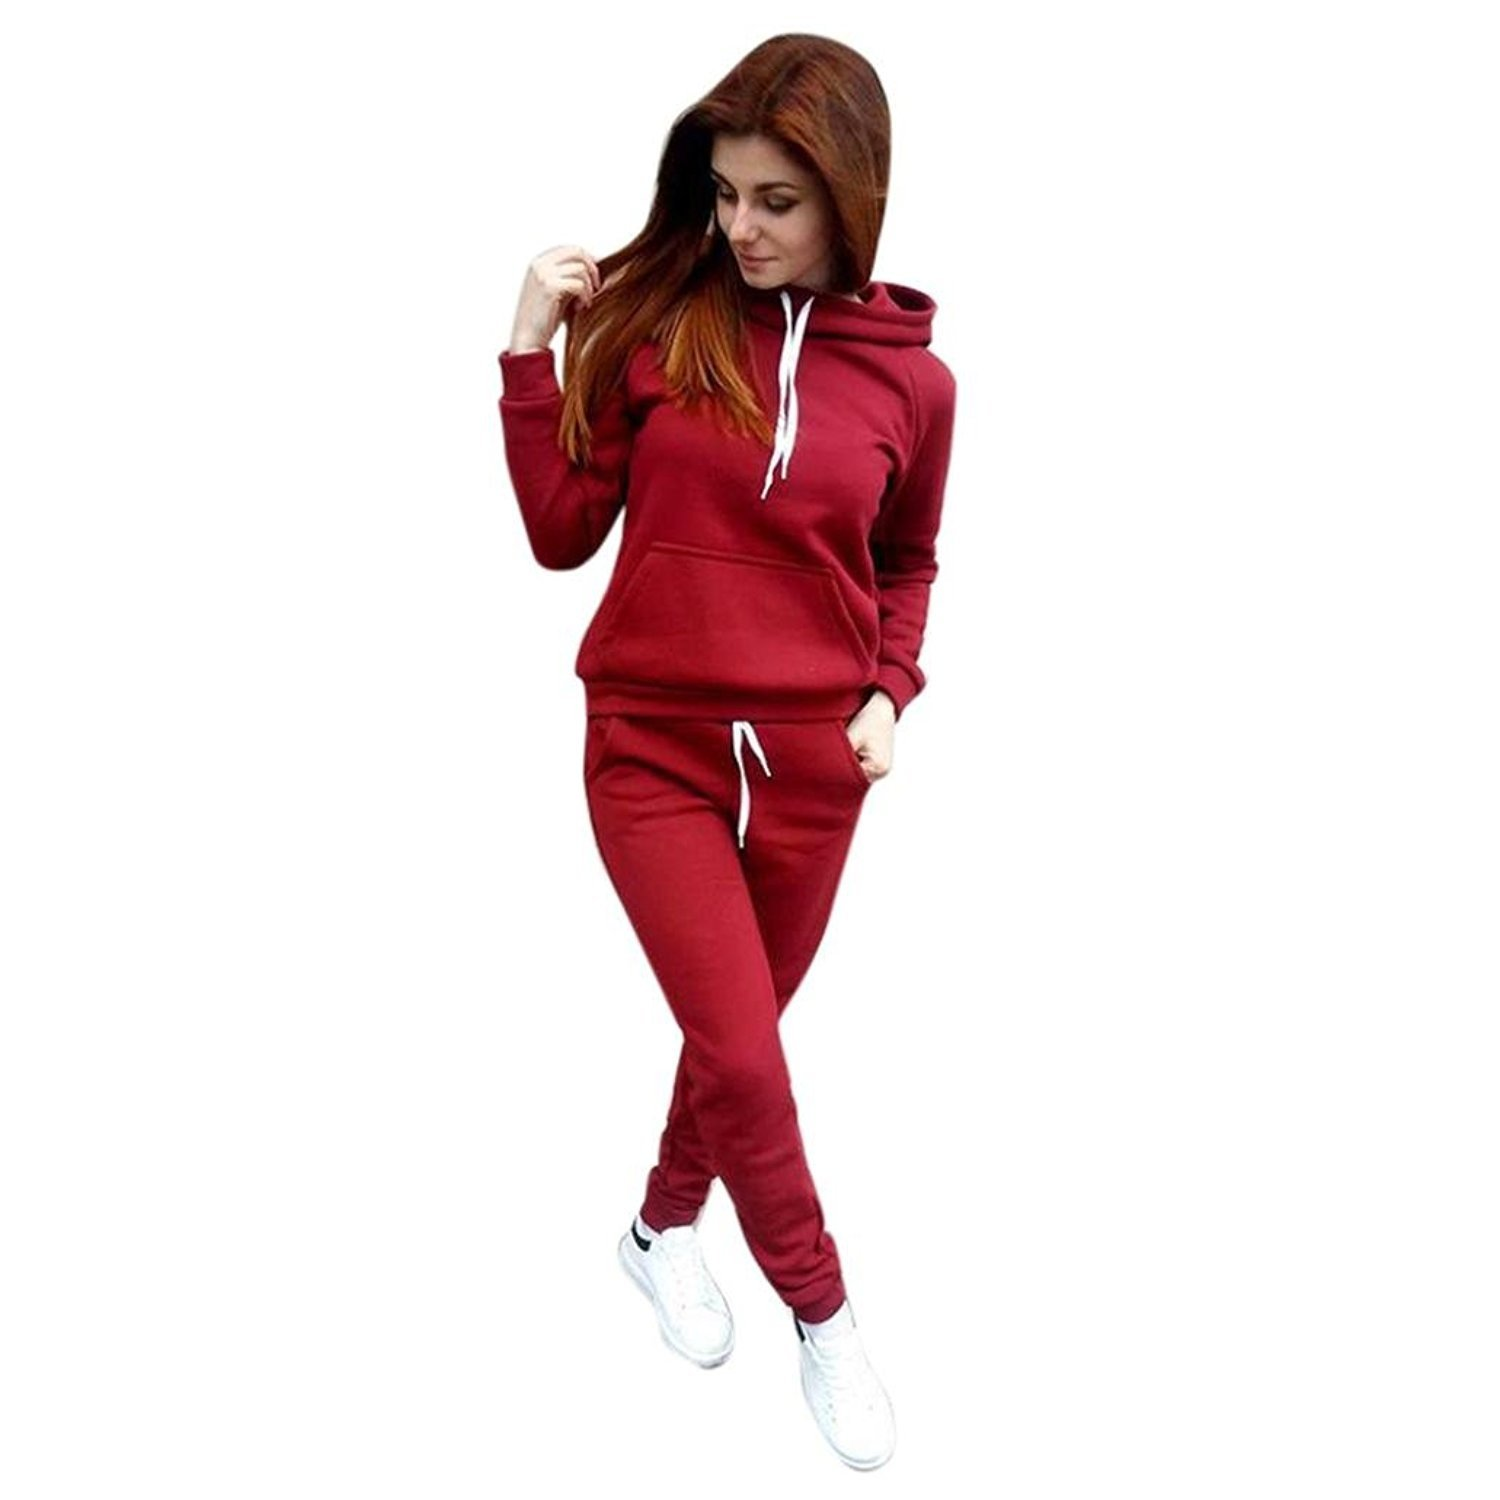 Challyhope Tracksuit, Women Casual Sweatshirt Hoodie + Sweatpants Two-Pieces Outfit